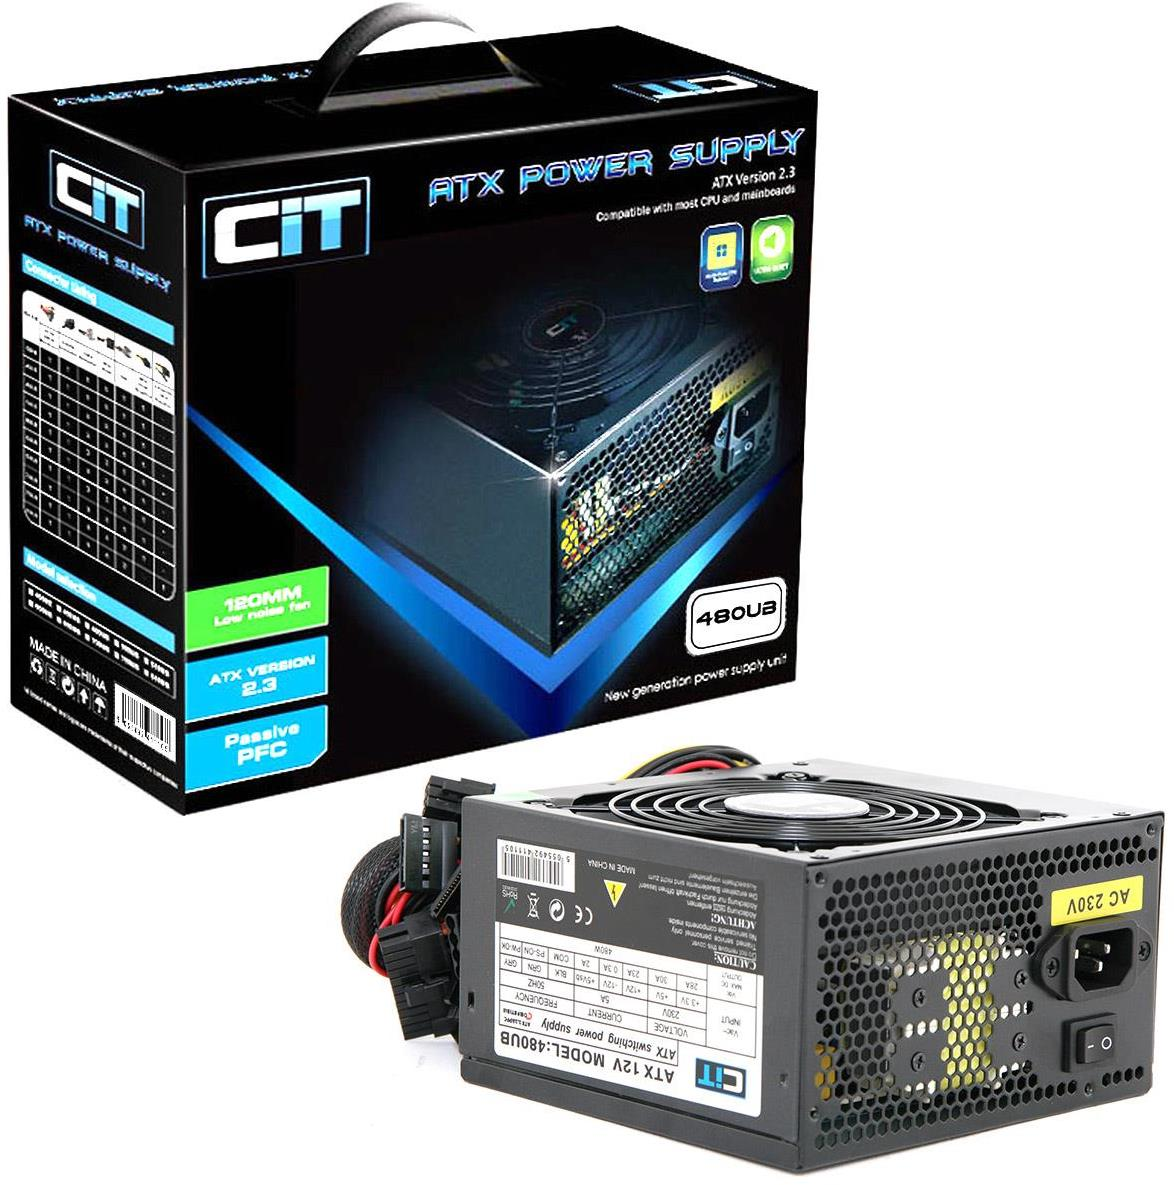 Cit 480W Black Edition PSU